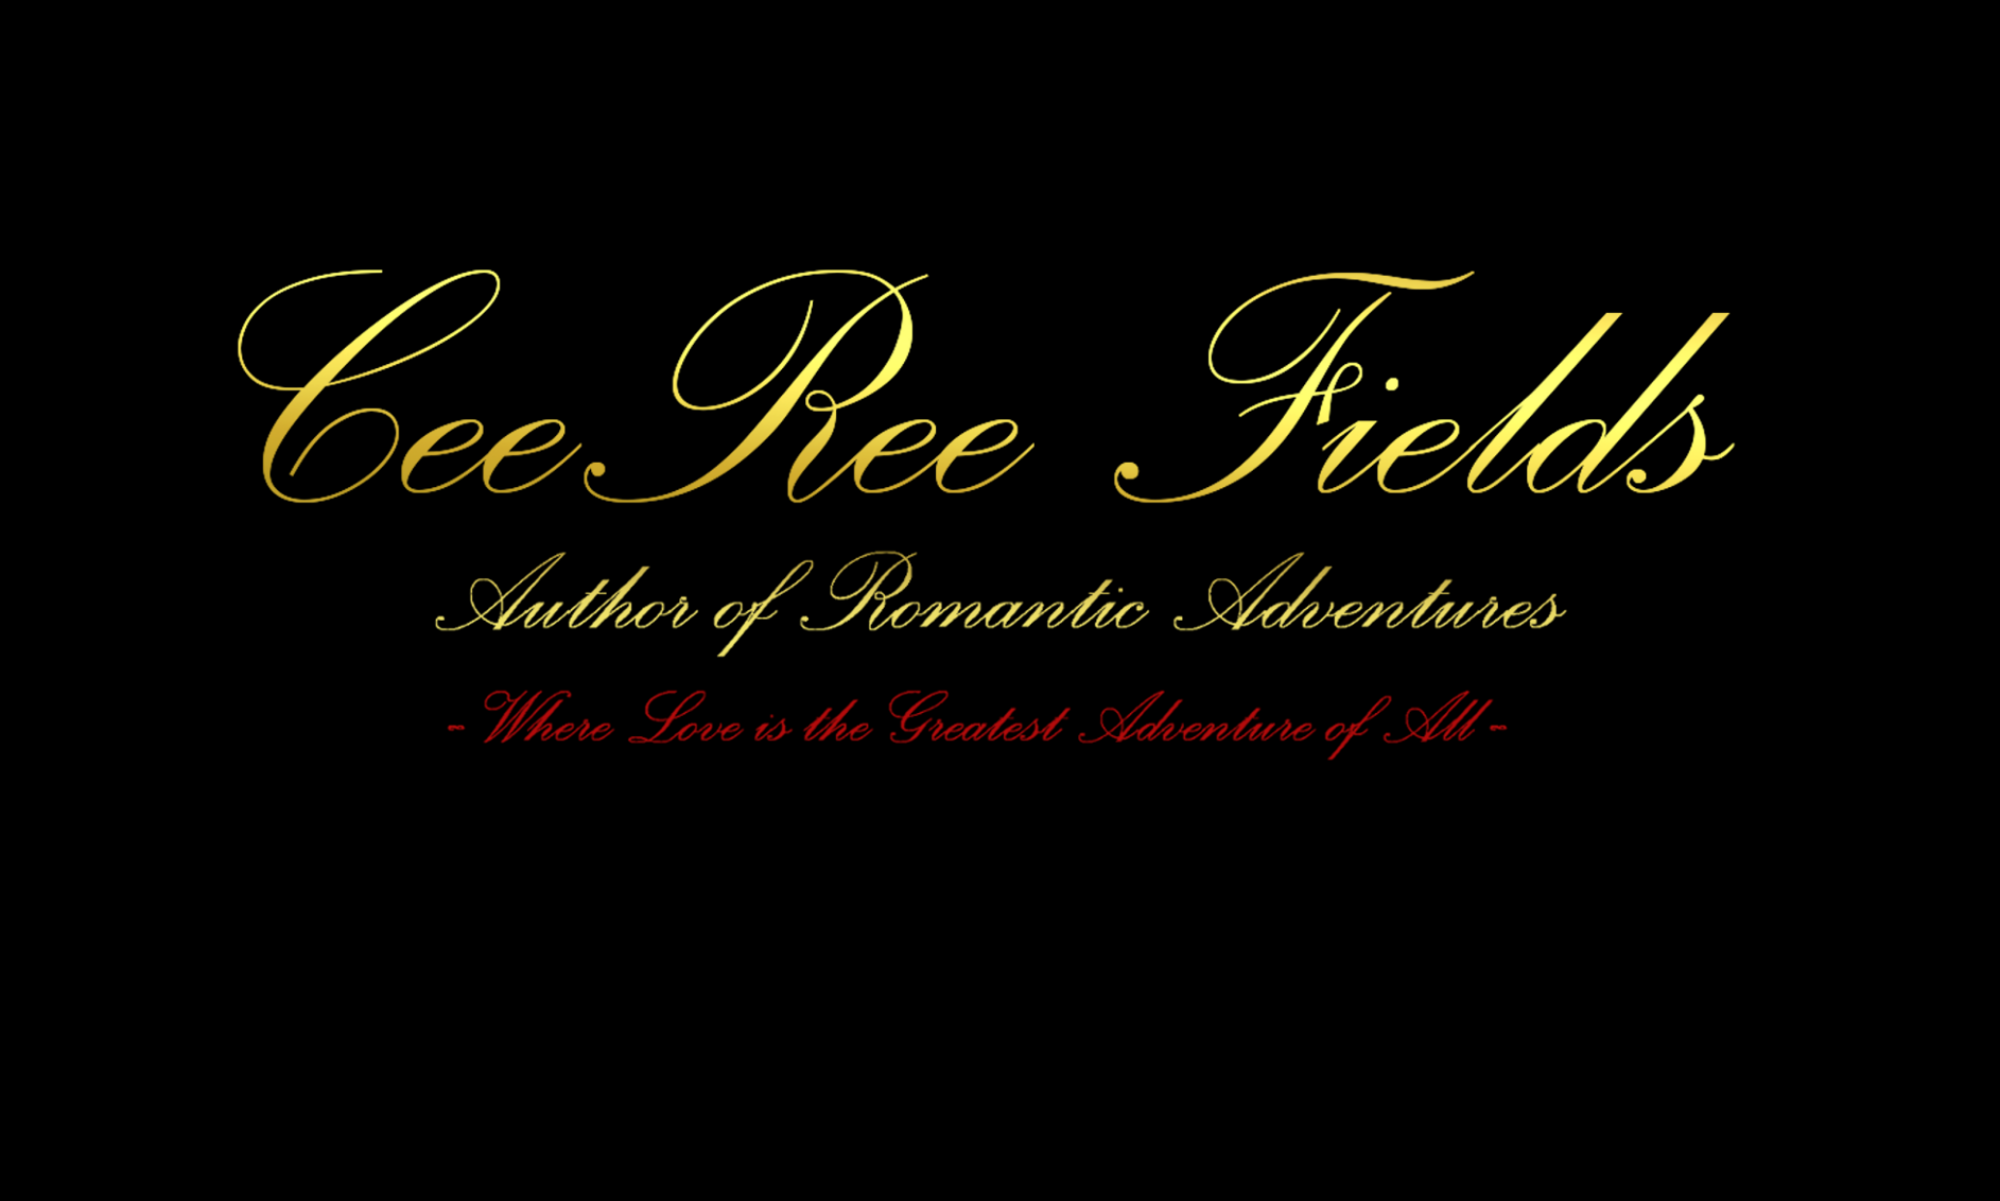 CeeRee Fields Romance Author